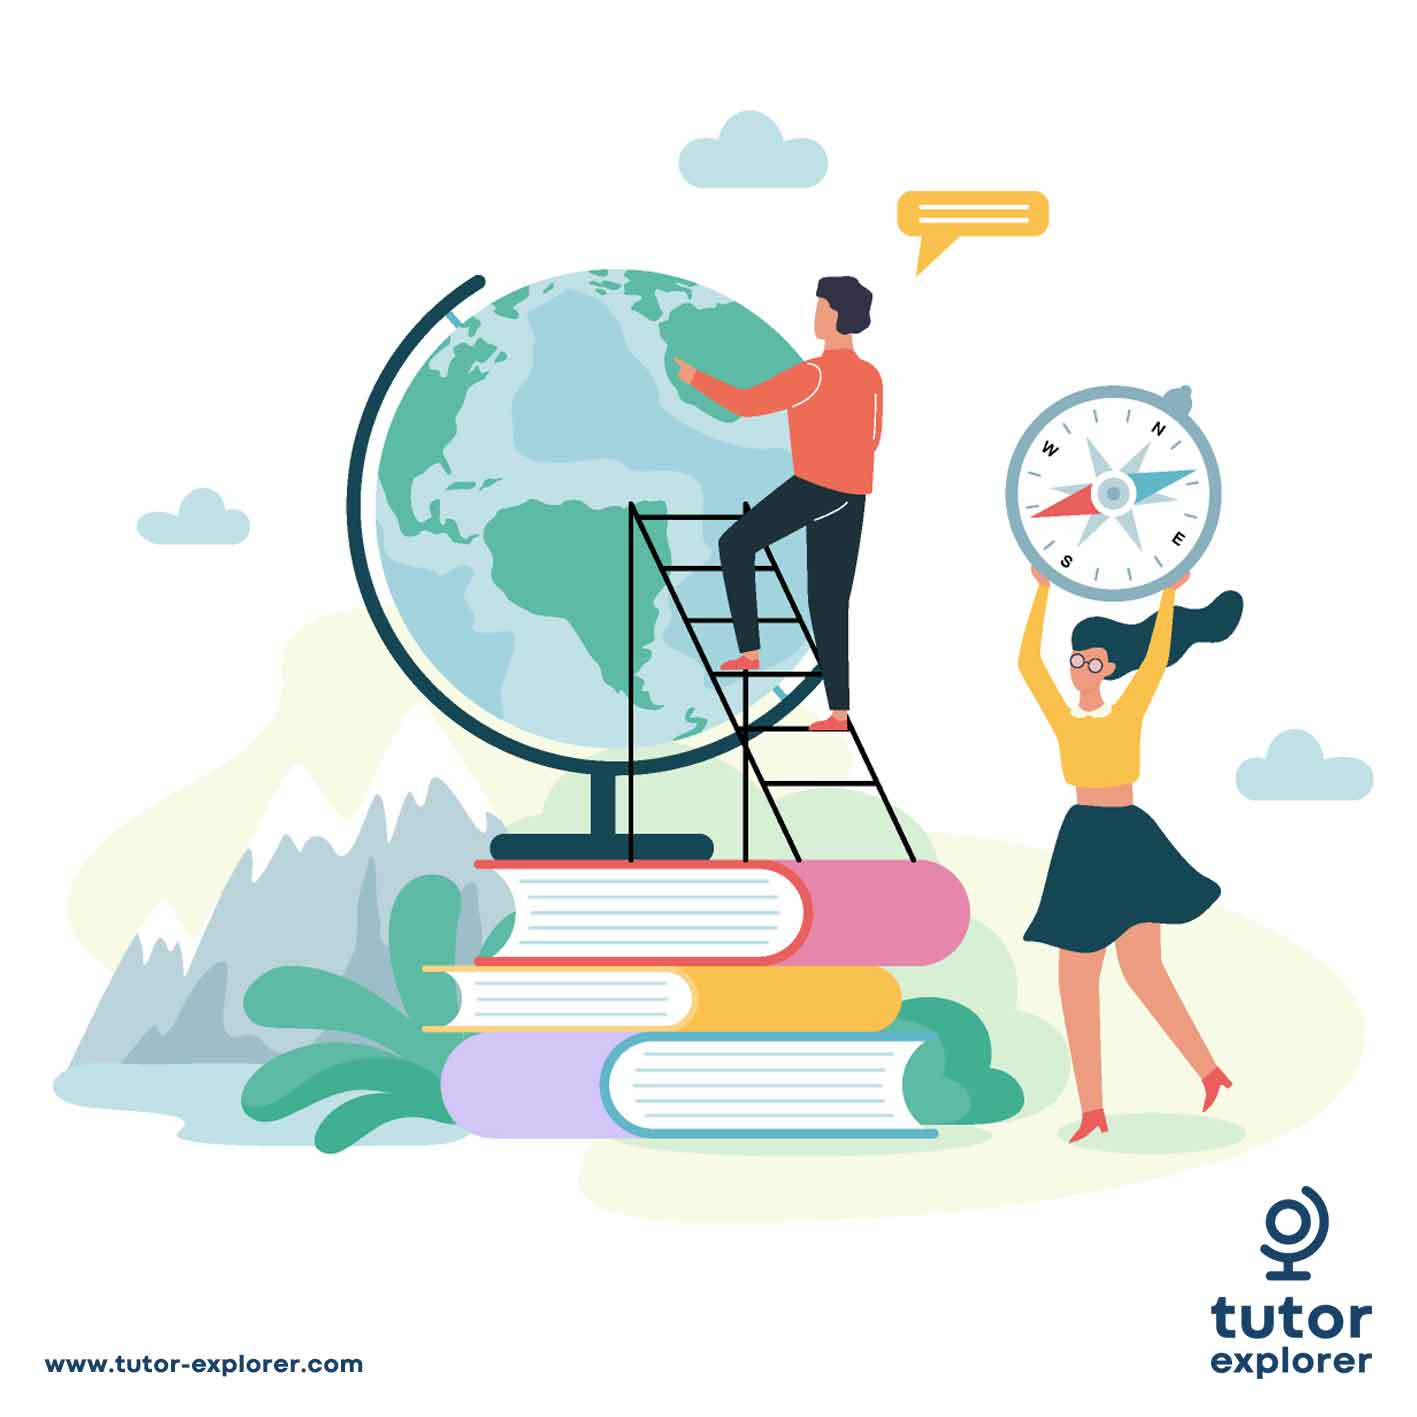 Tutor Explorer - www.tutor-explorer.com - Tutors For Ages, Levels and Subjects at Pre-School - Primary School - Secondary School - College - University - Adult Learning Levels